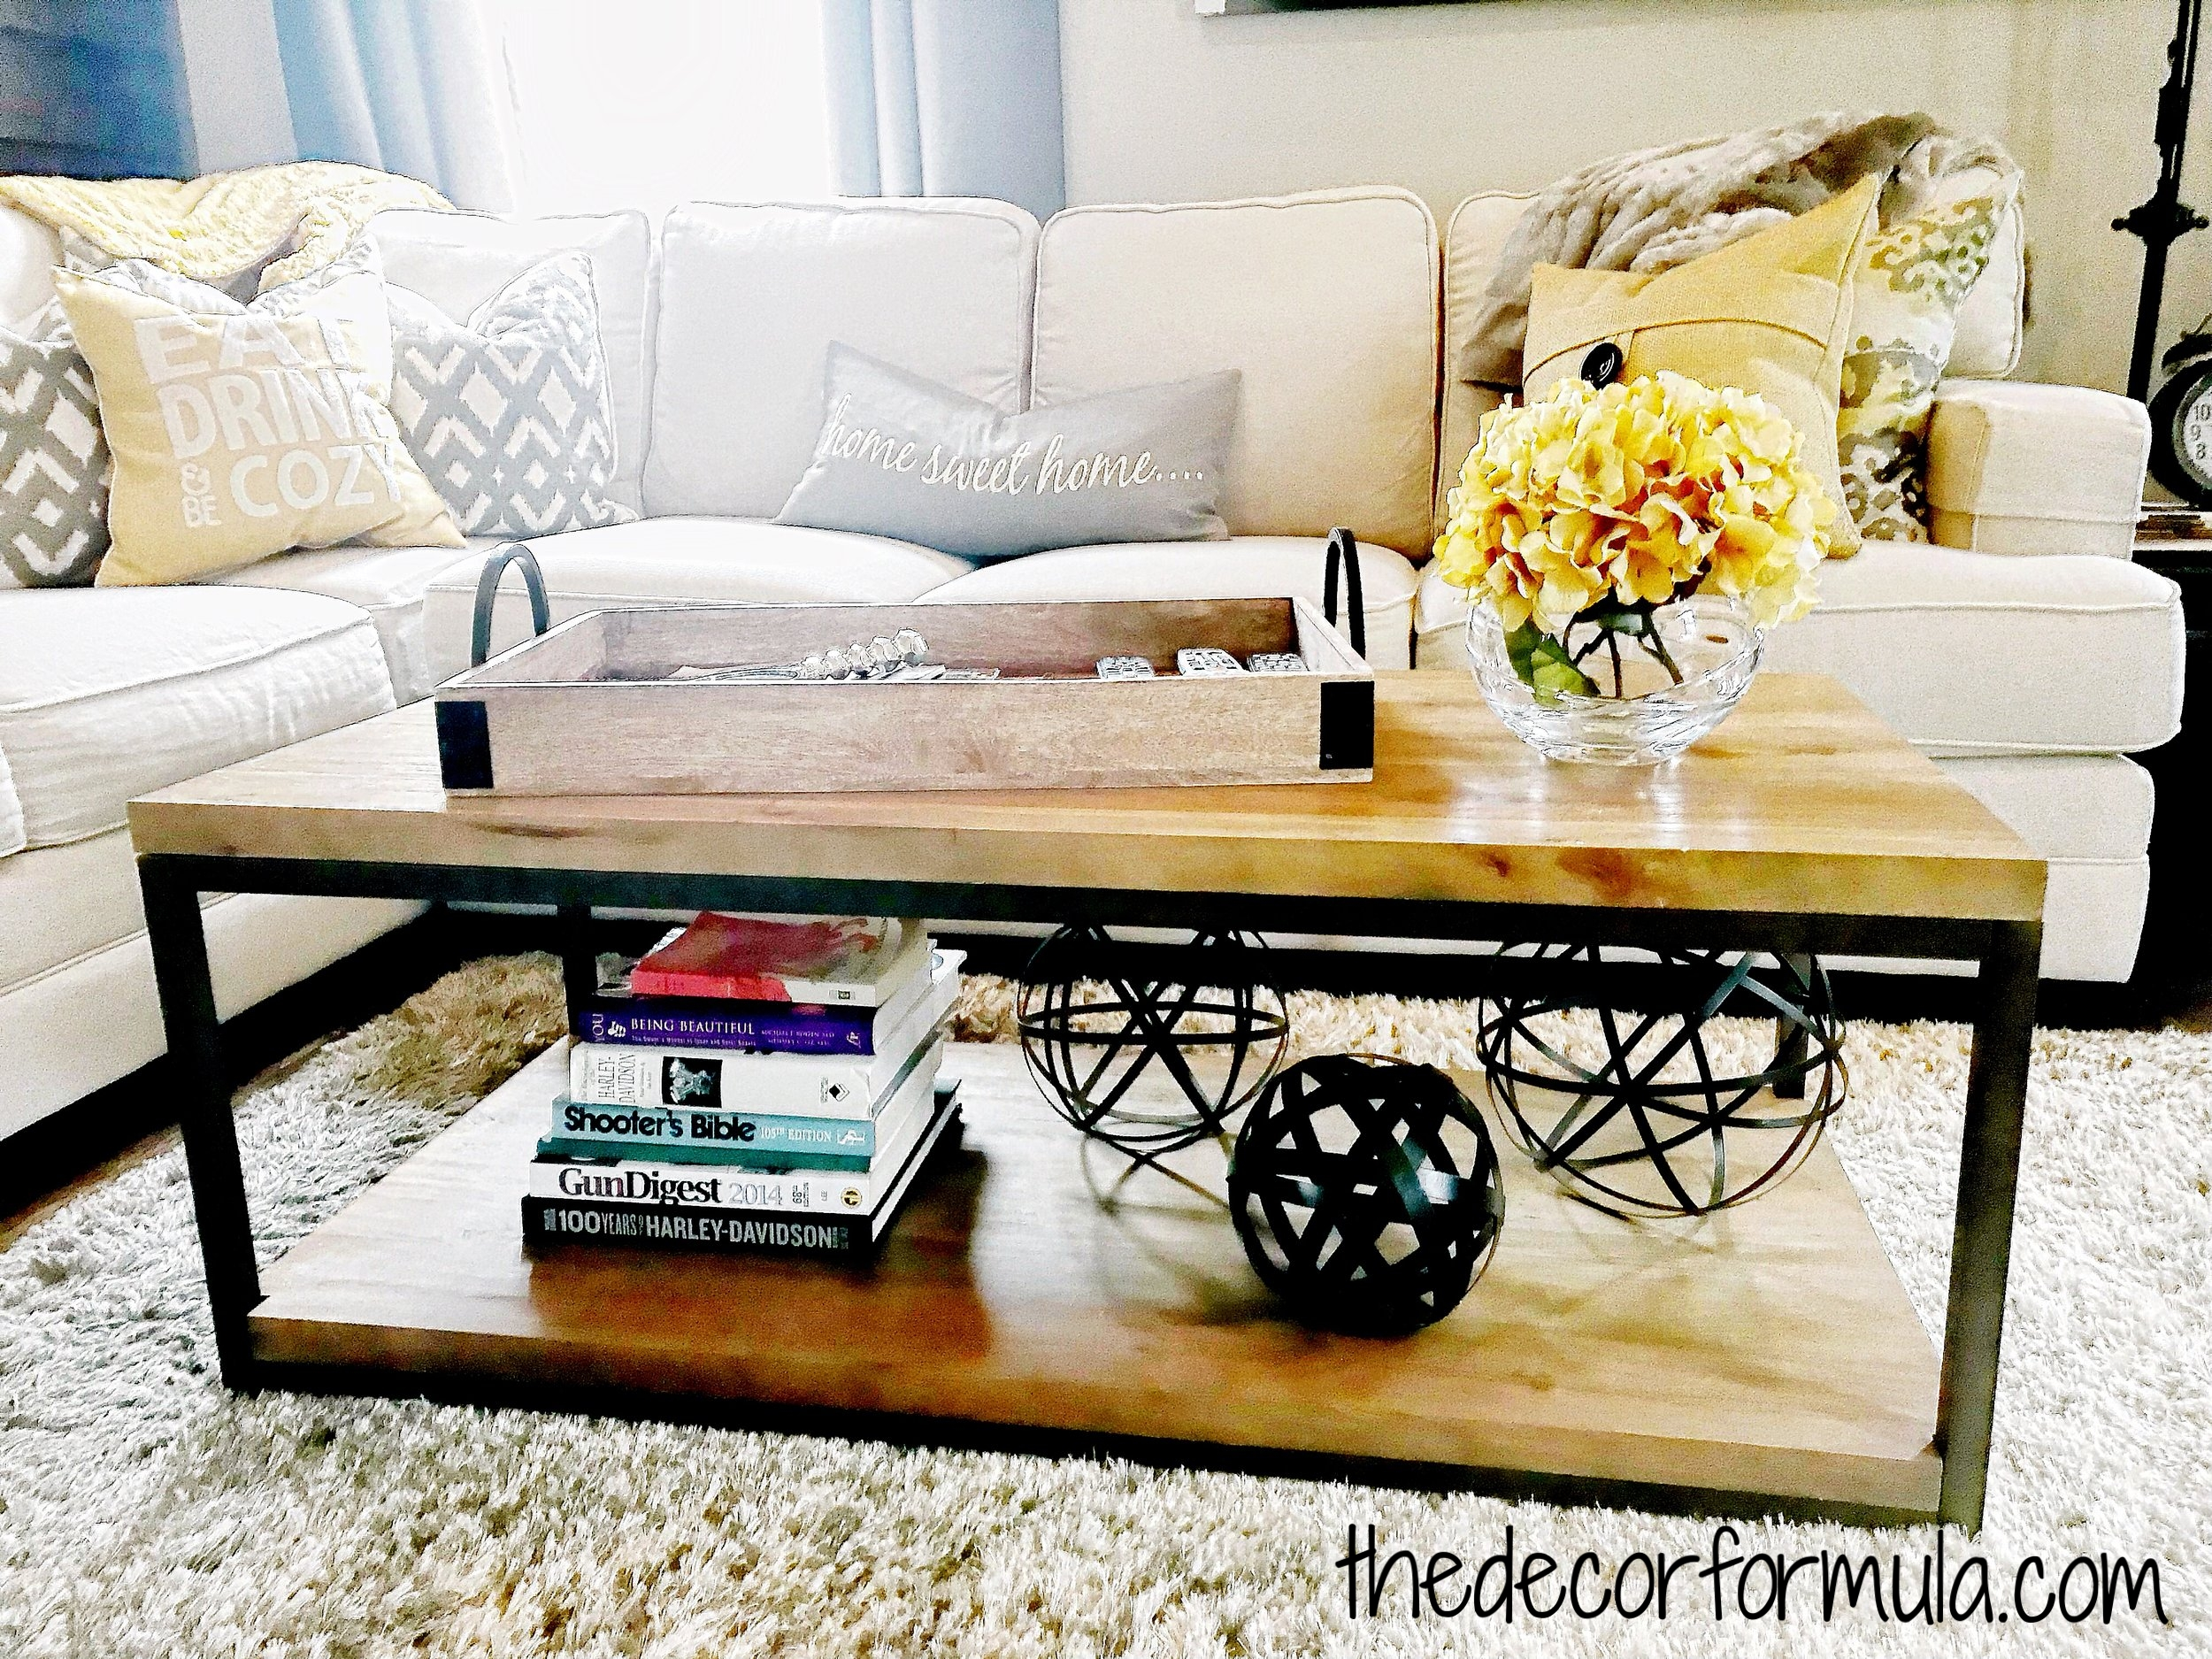 How To Decorate A Coffee Table The Decor Formula